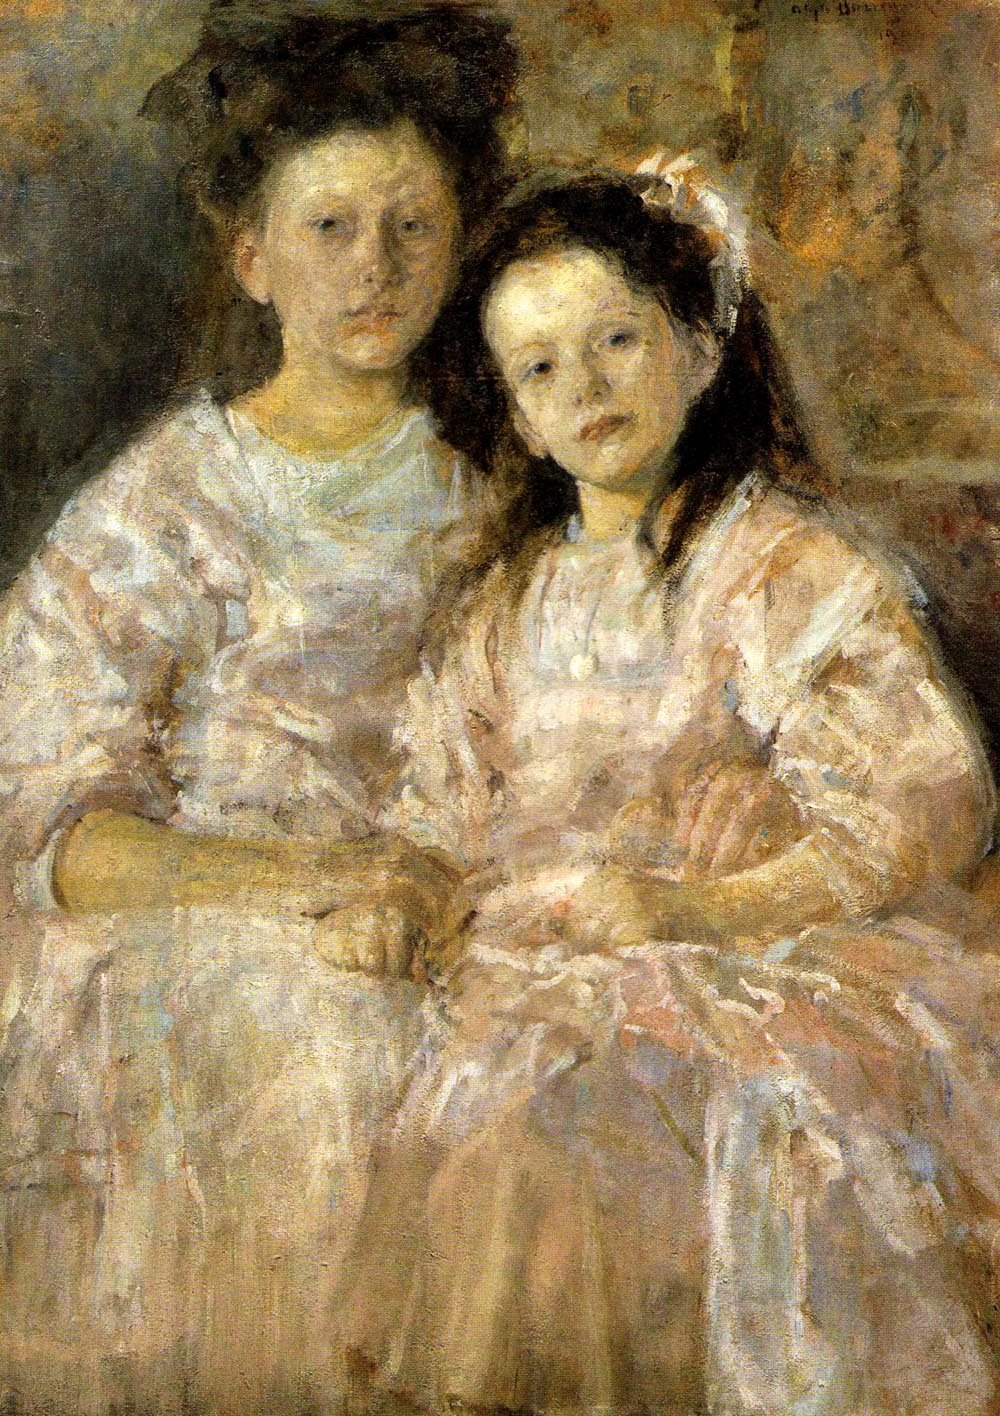 Portrait of Two Girls - Helena and Wladyslawa Chmielarczyk